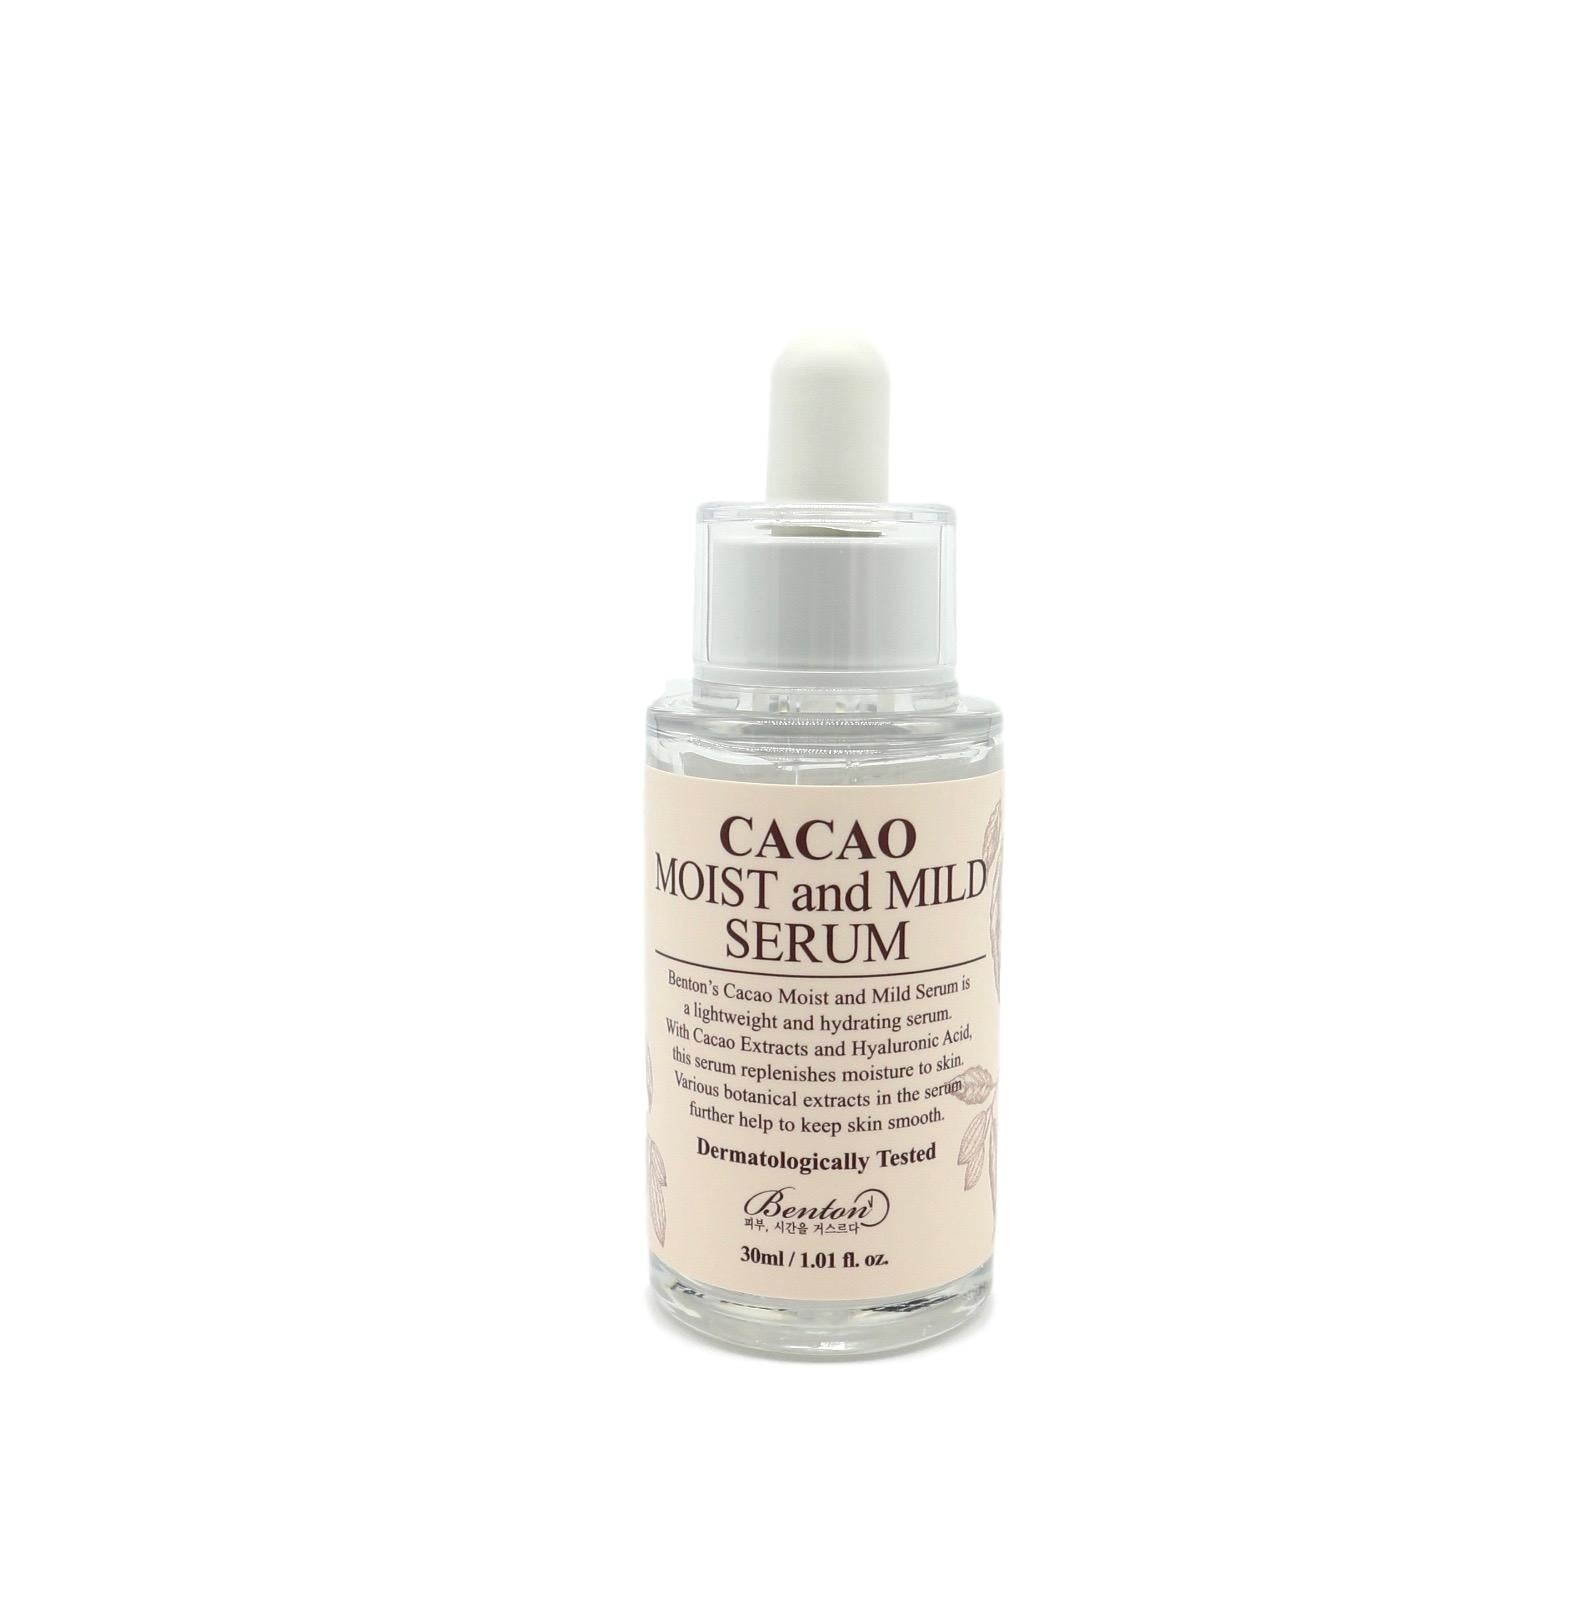 Cacao Moist and Mild Serum | Siero Idratante al Cacao